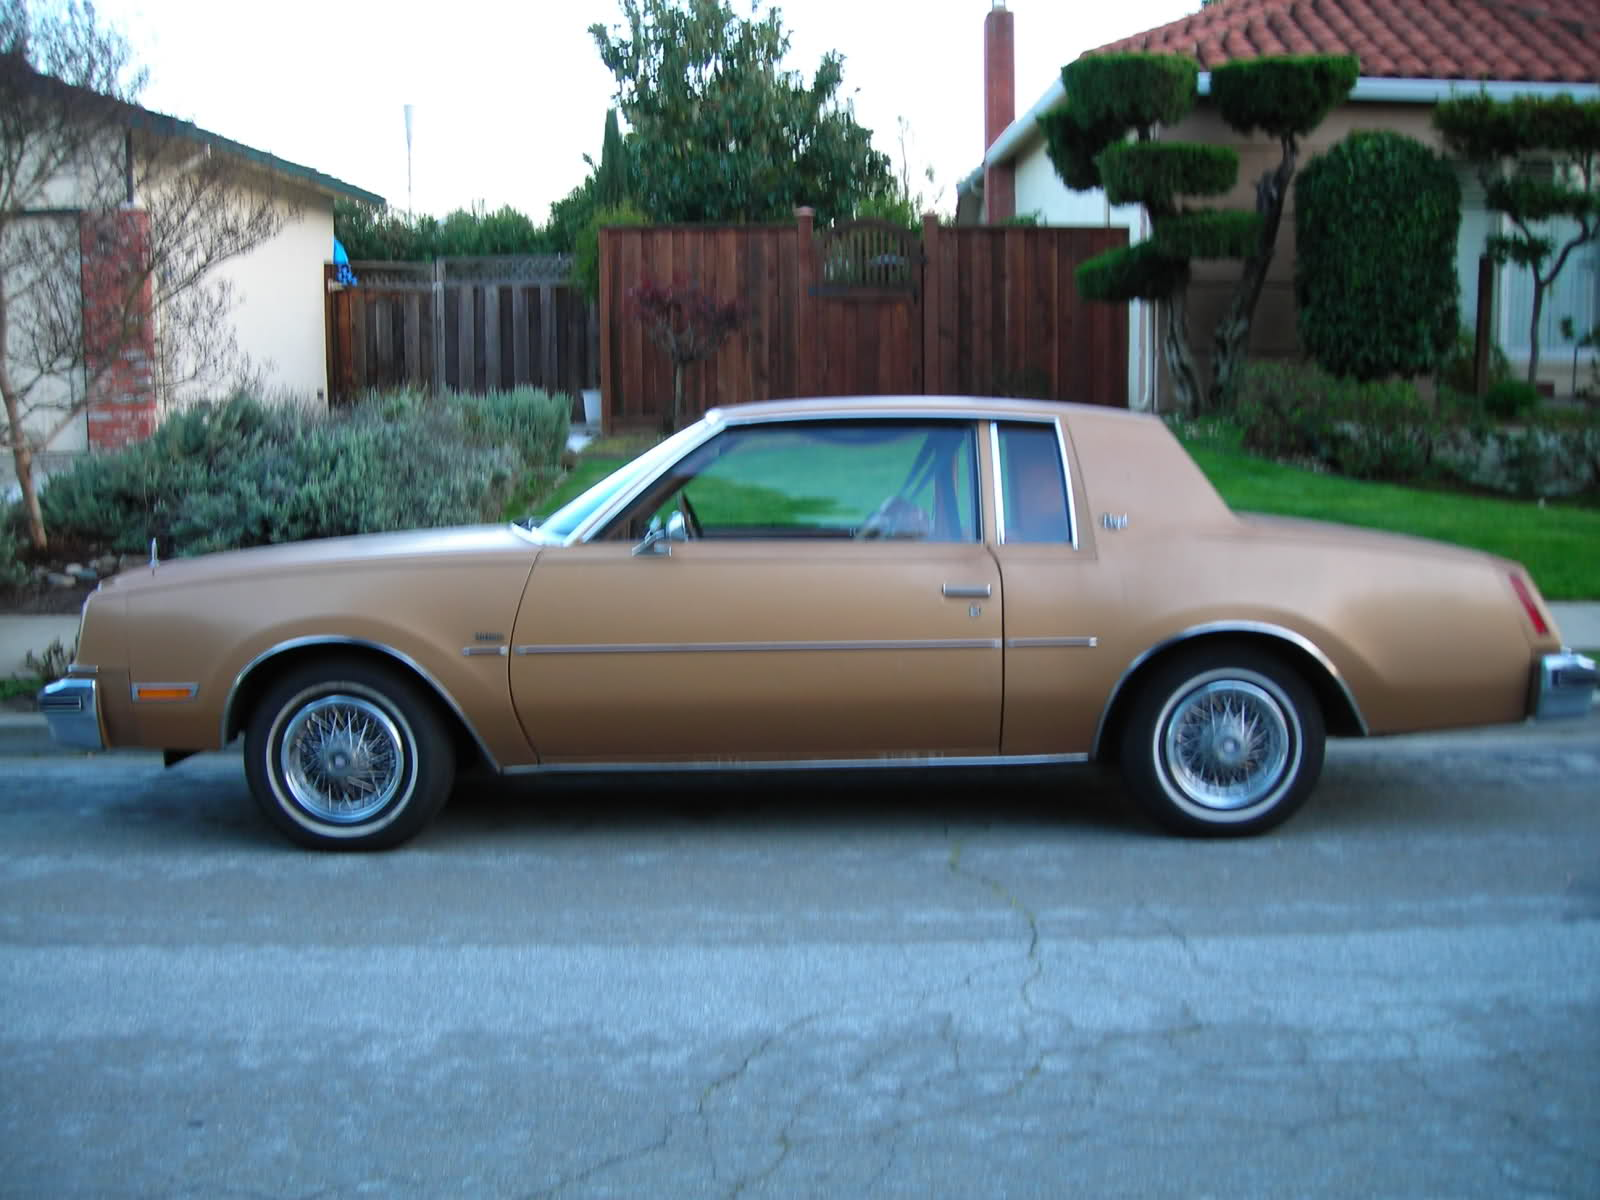 Buick Regal #2